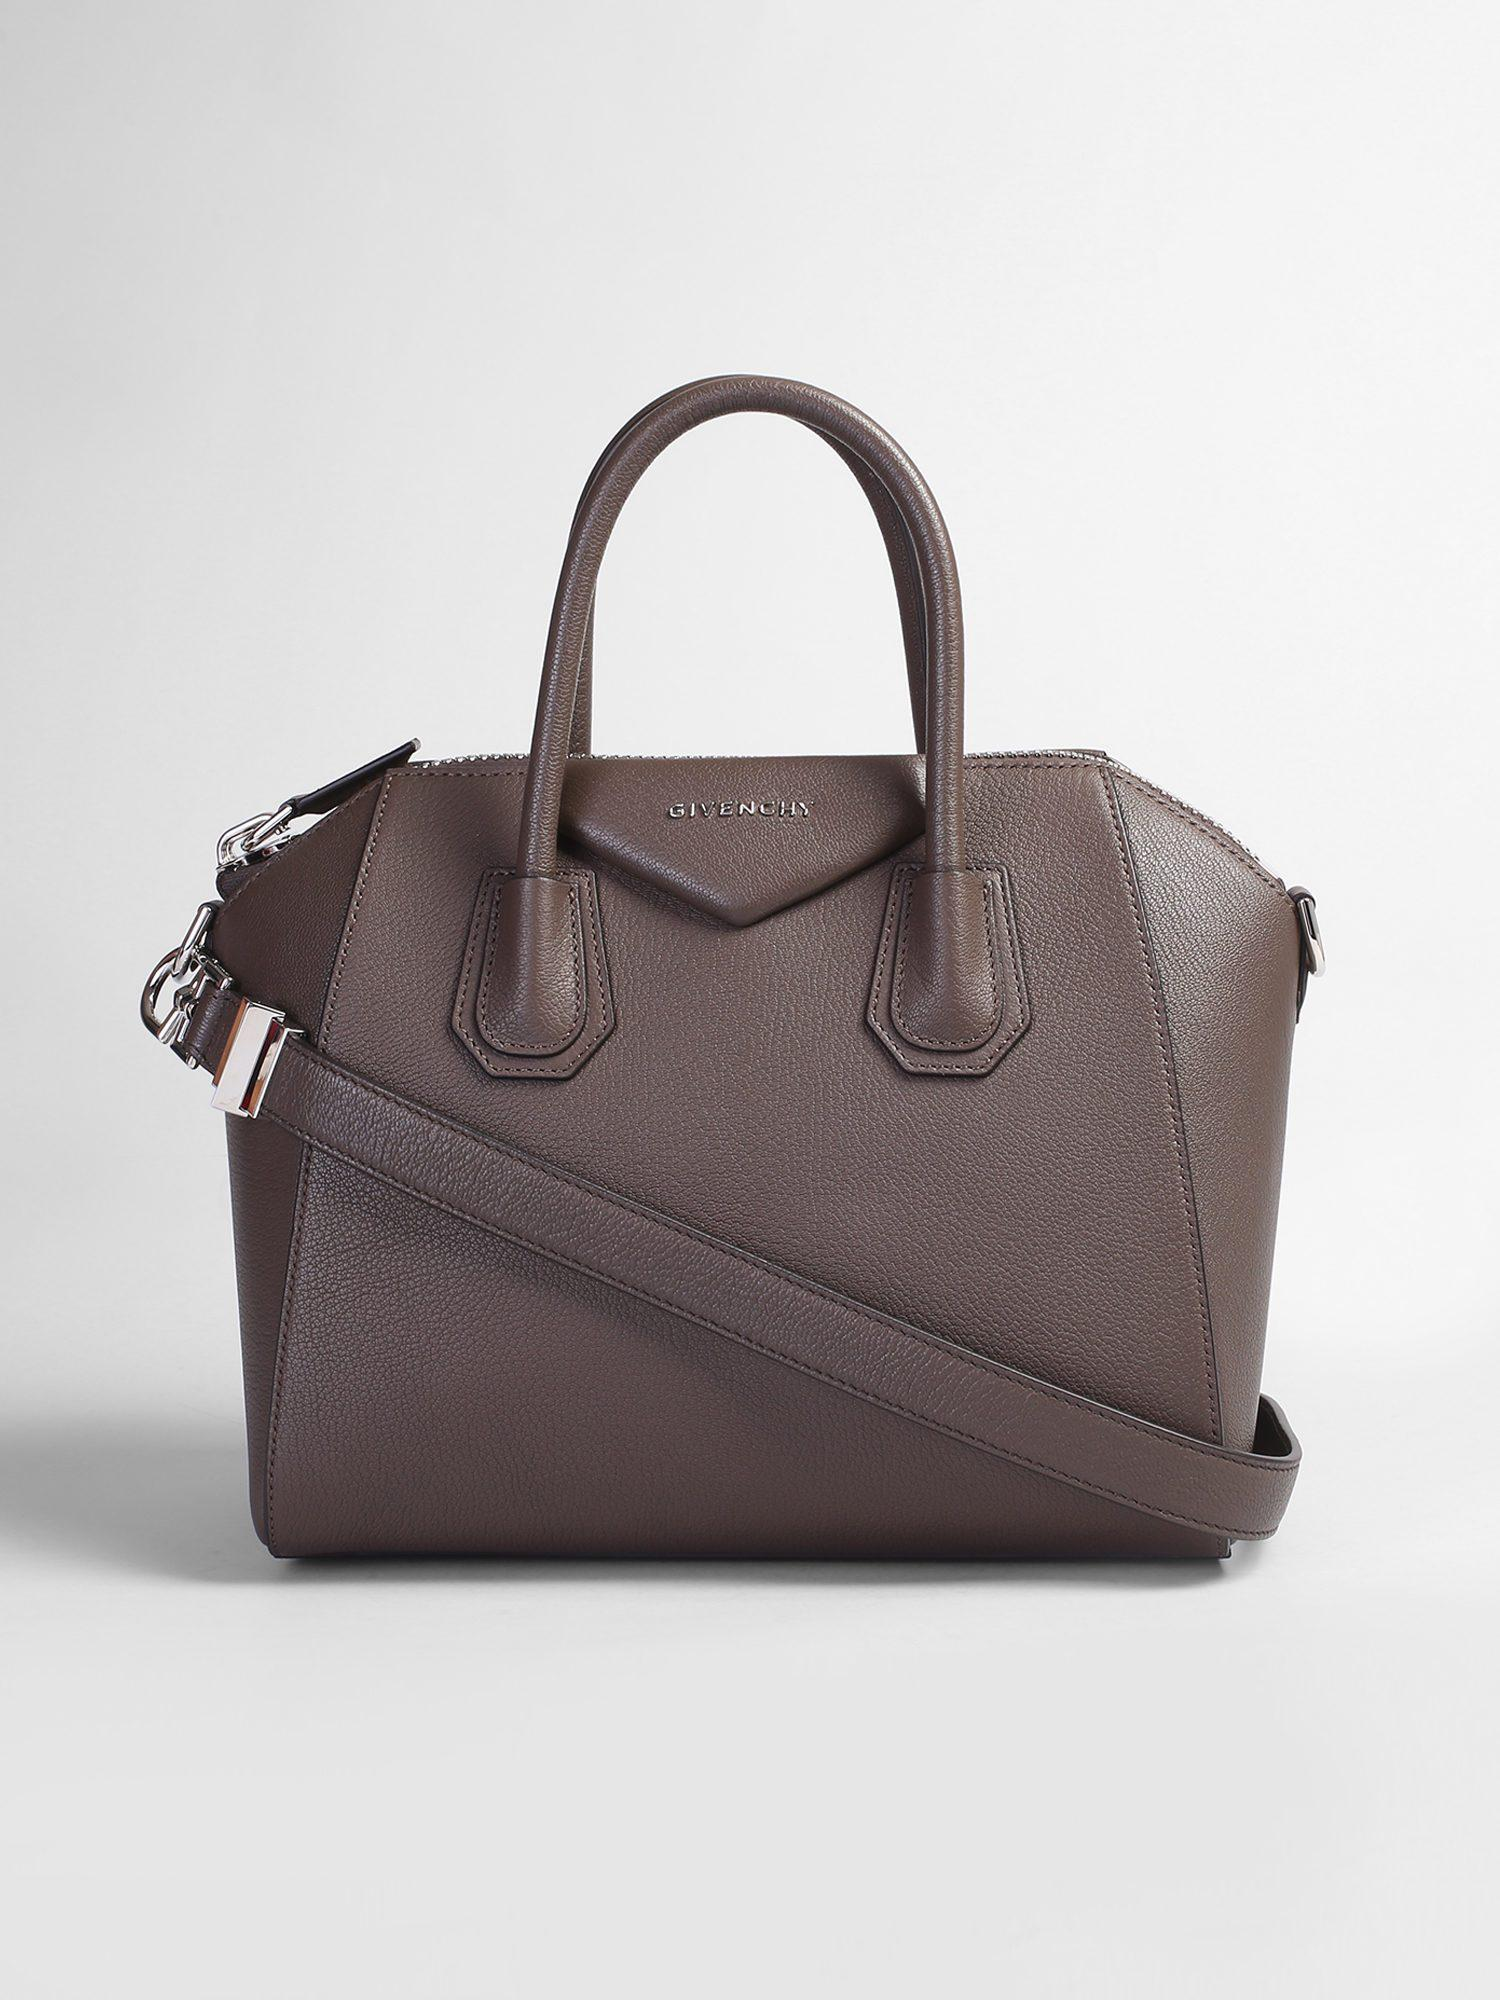 27abf1764e6b Givenchy Small Antigona Leather Bag in Brown - Lyst